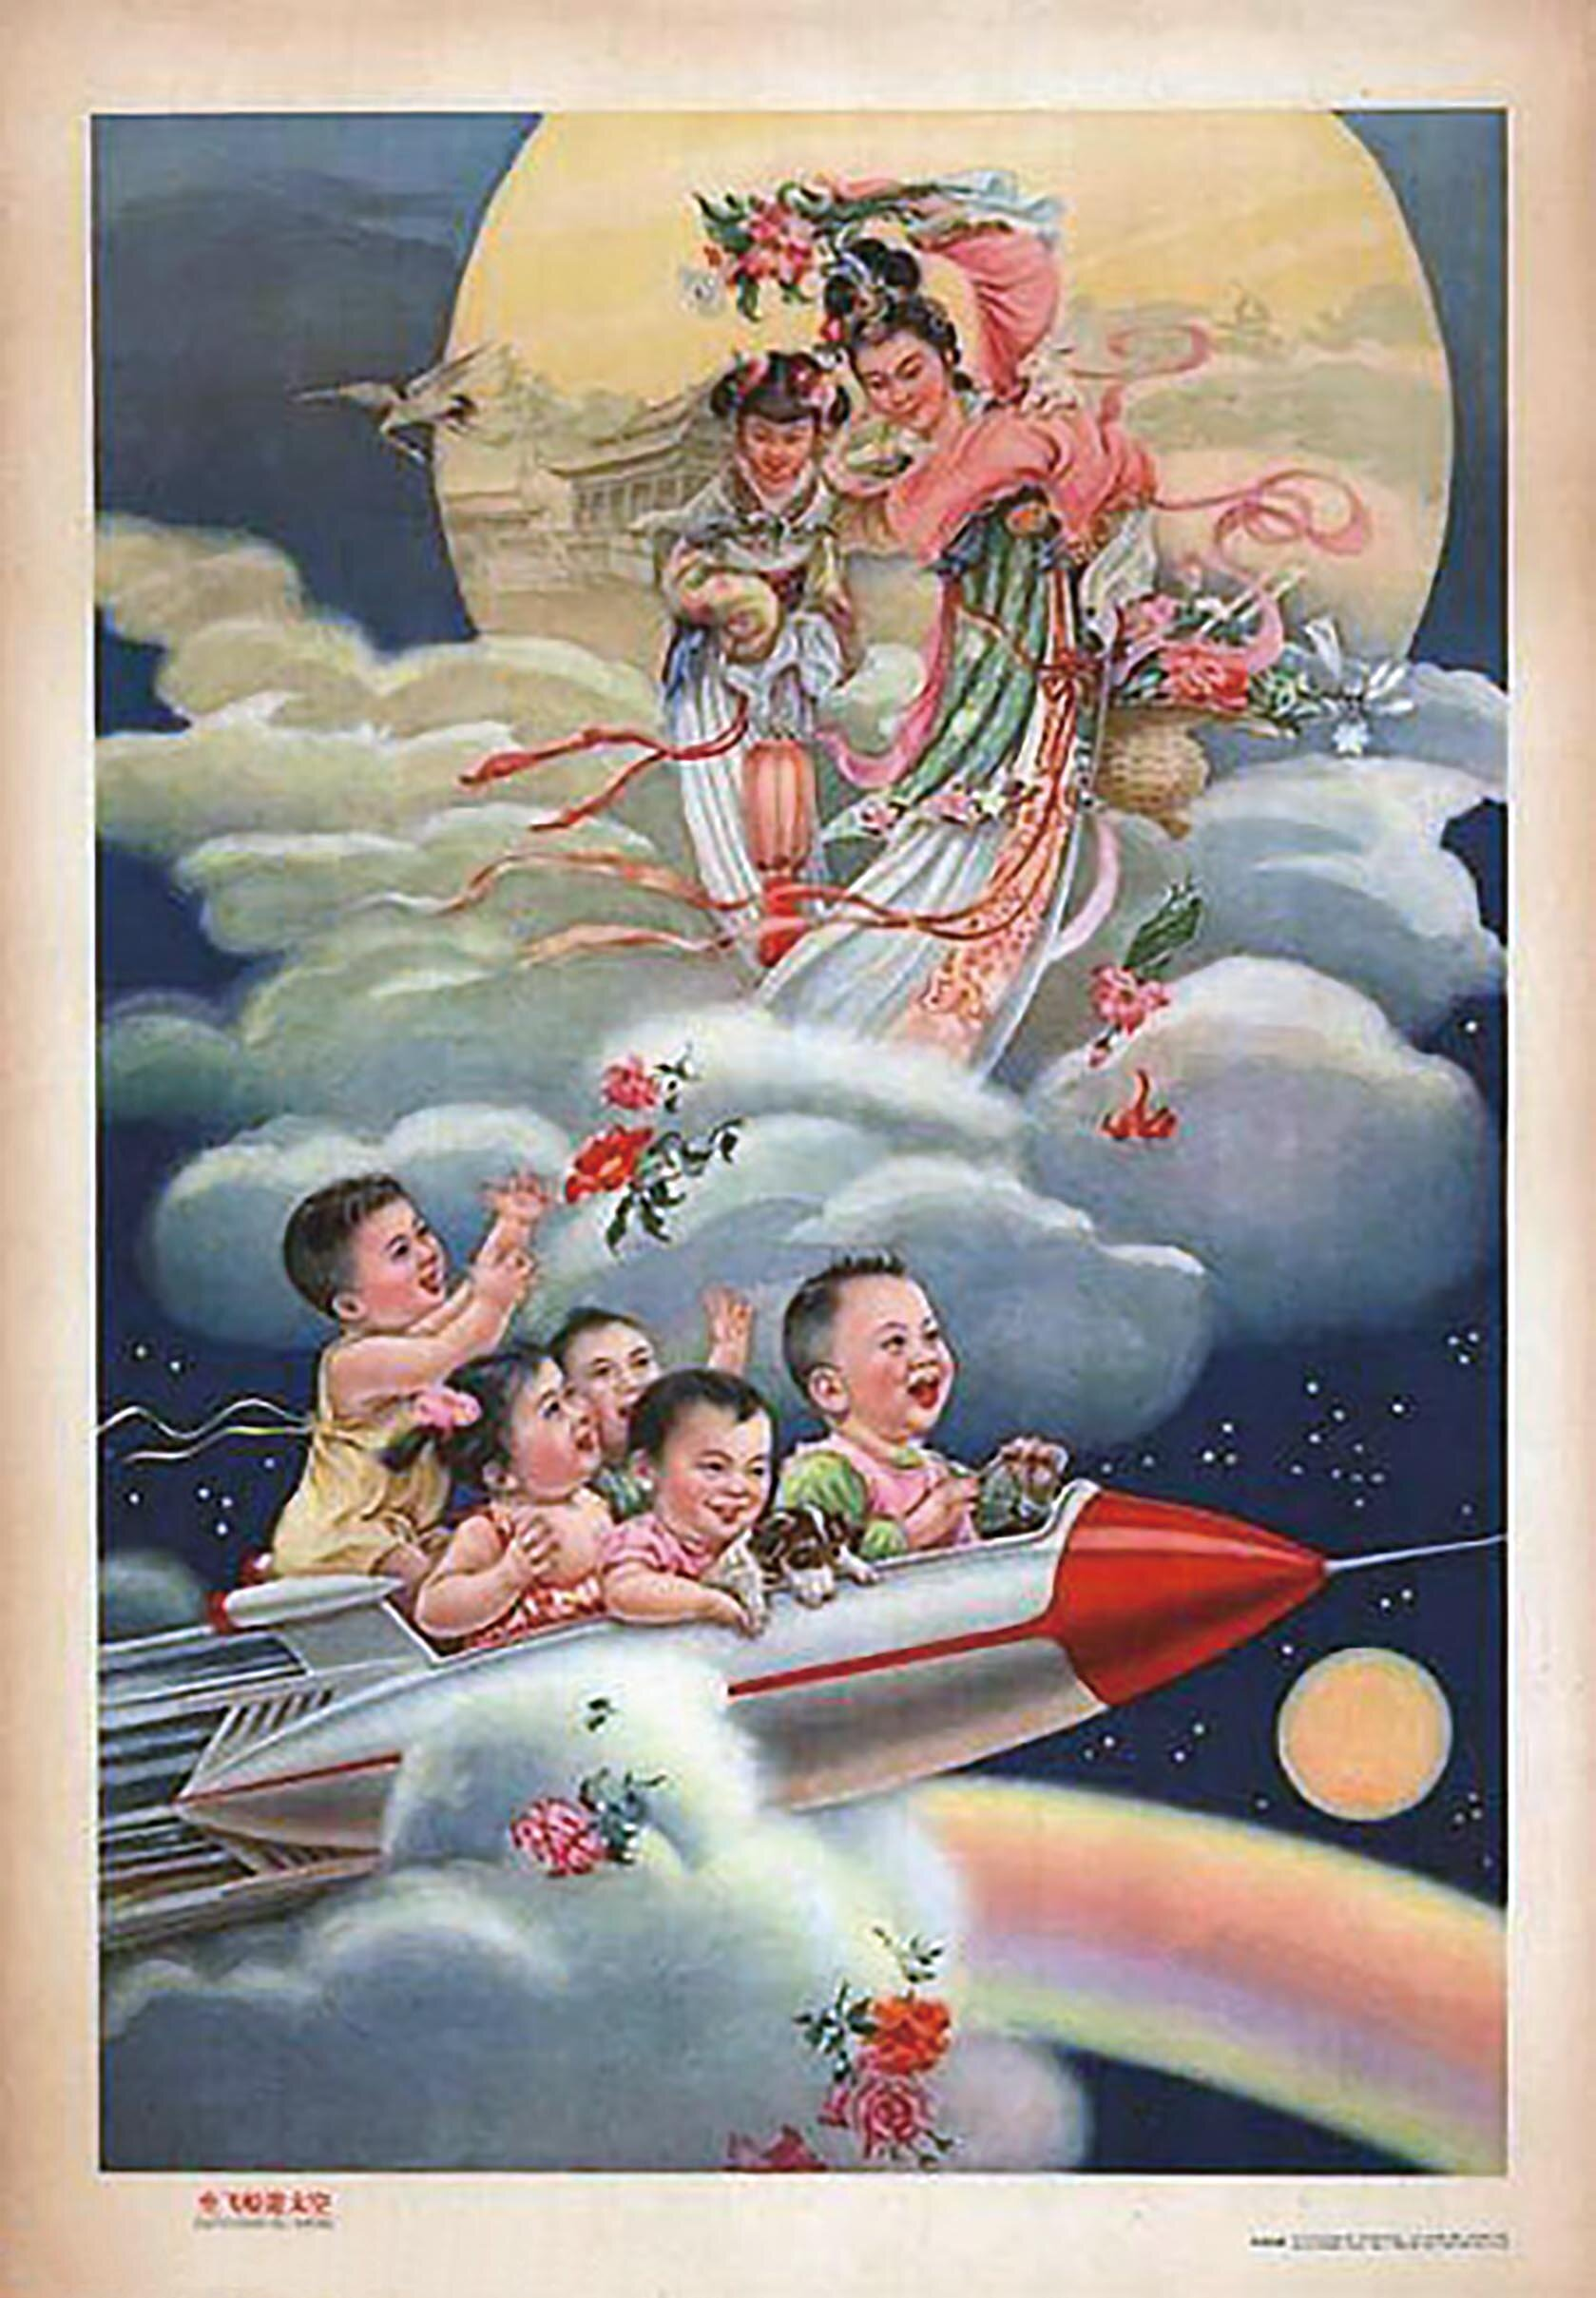 坐飛船游太空/Roaming outer space in an airship, 1962